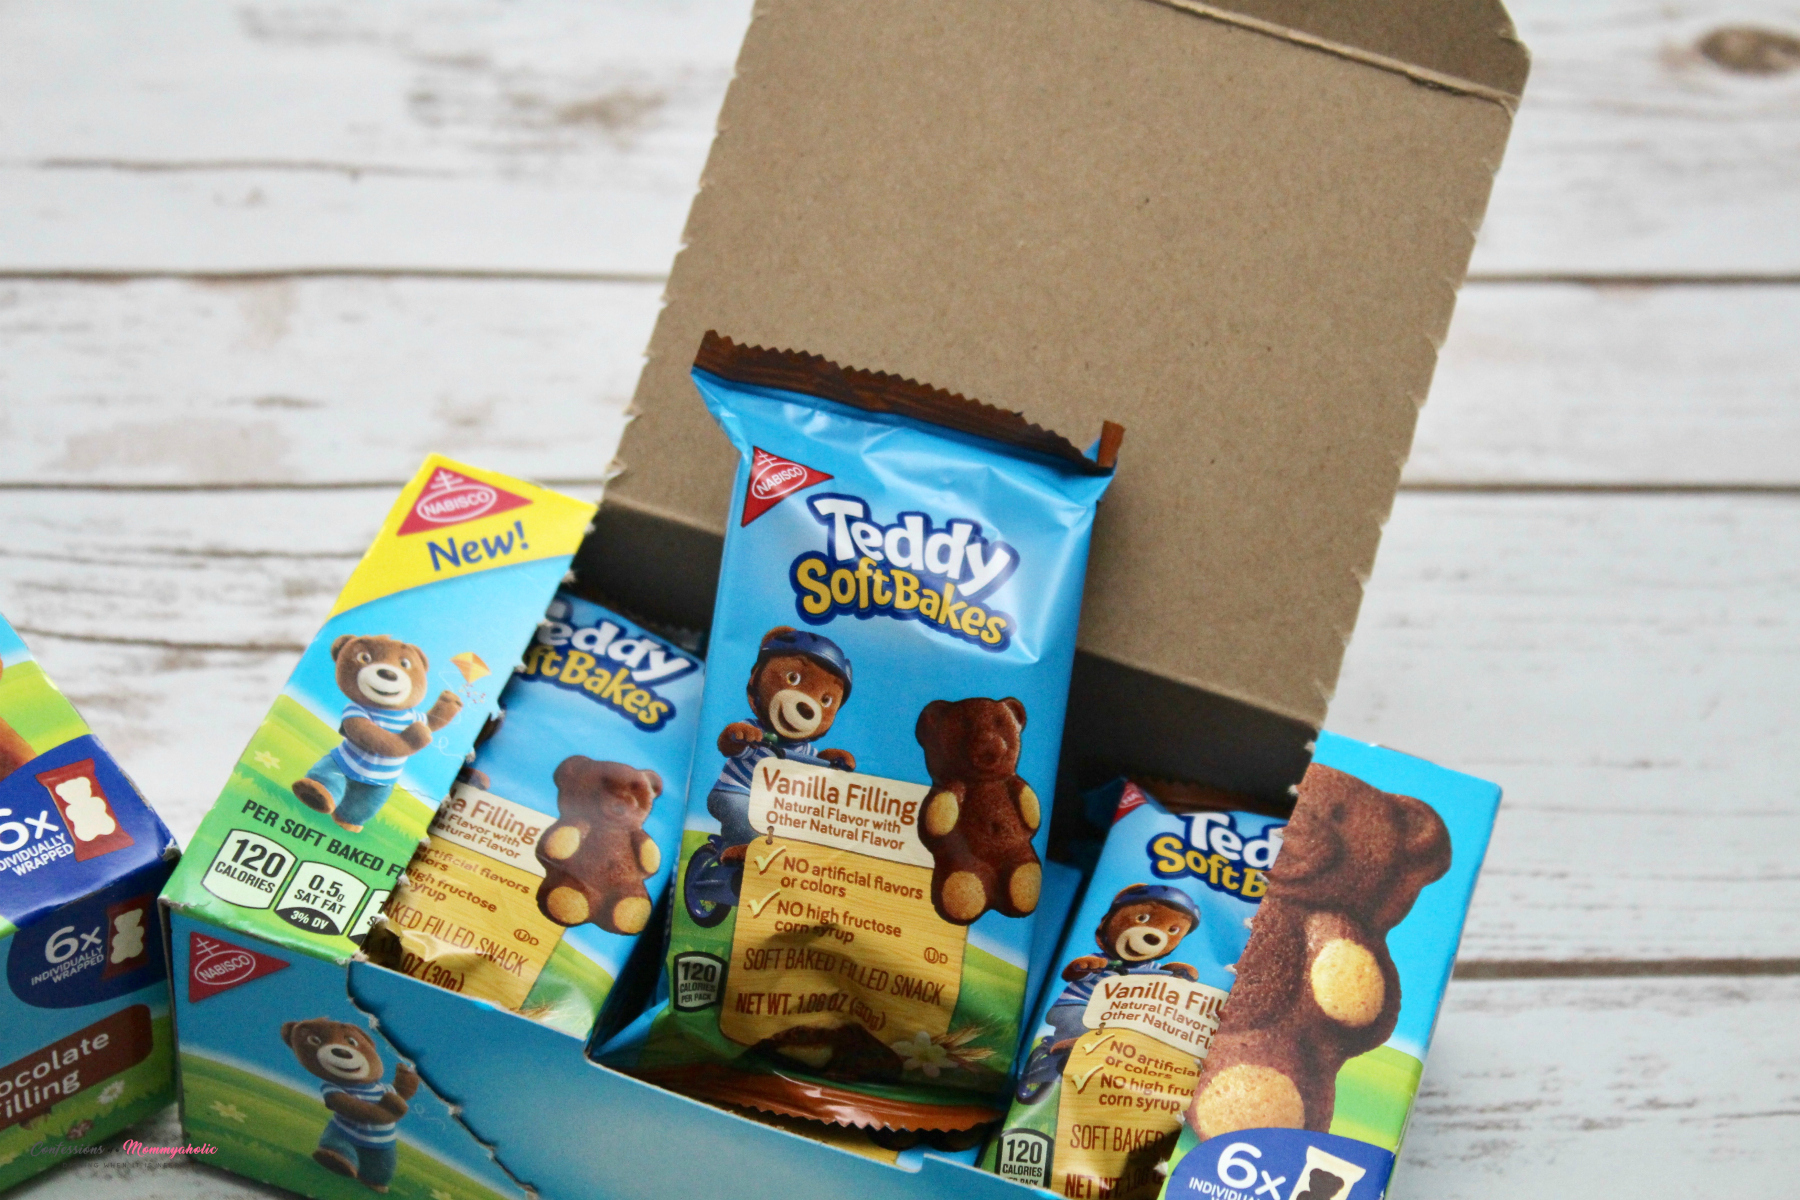 Opened Teddy Soft Bakes Box